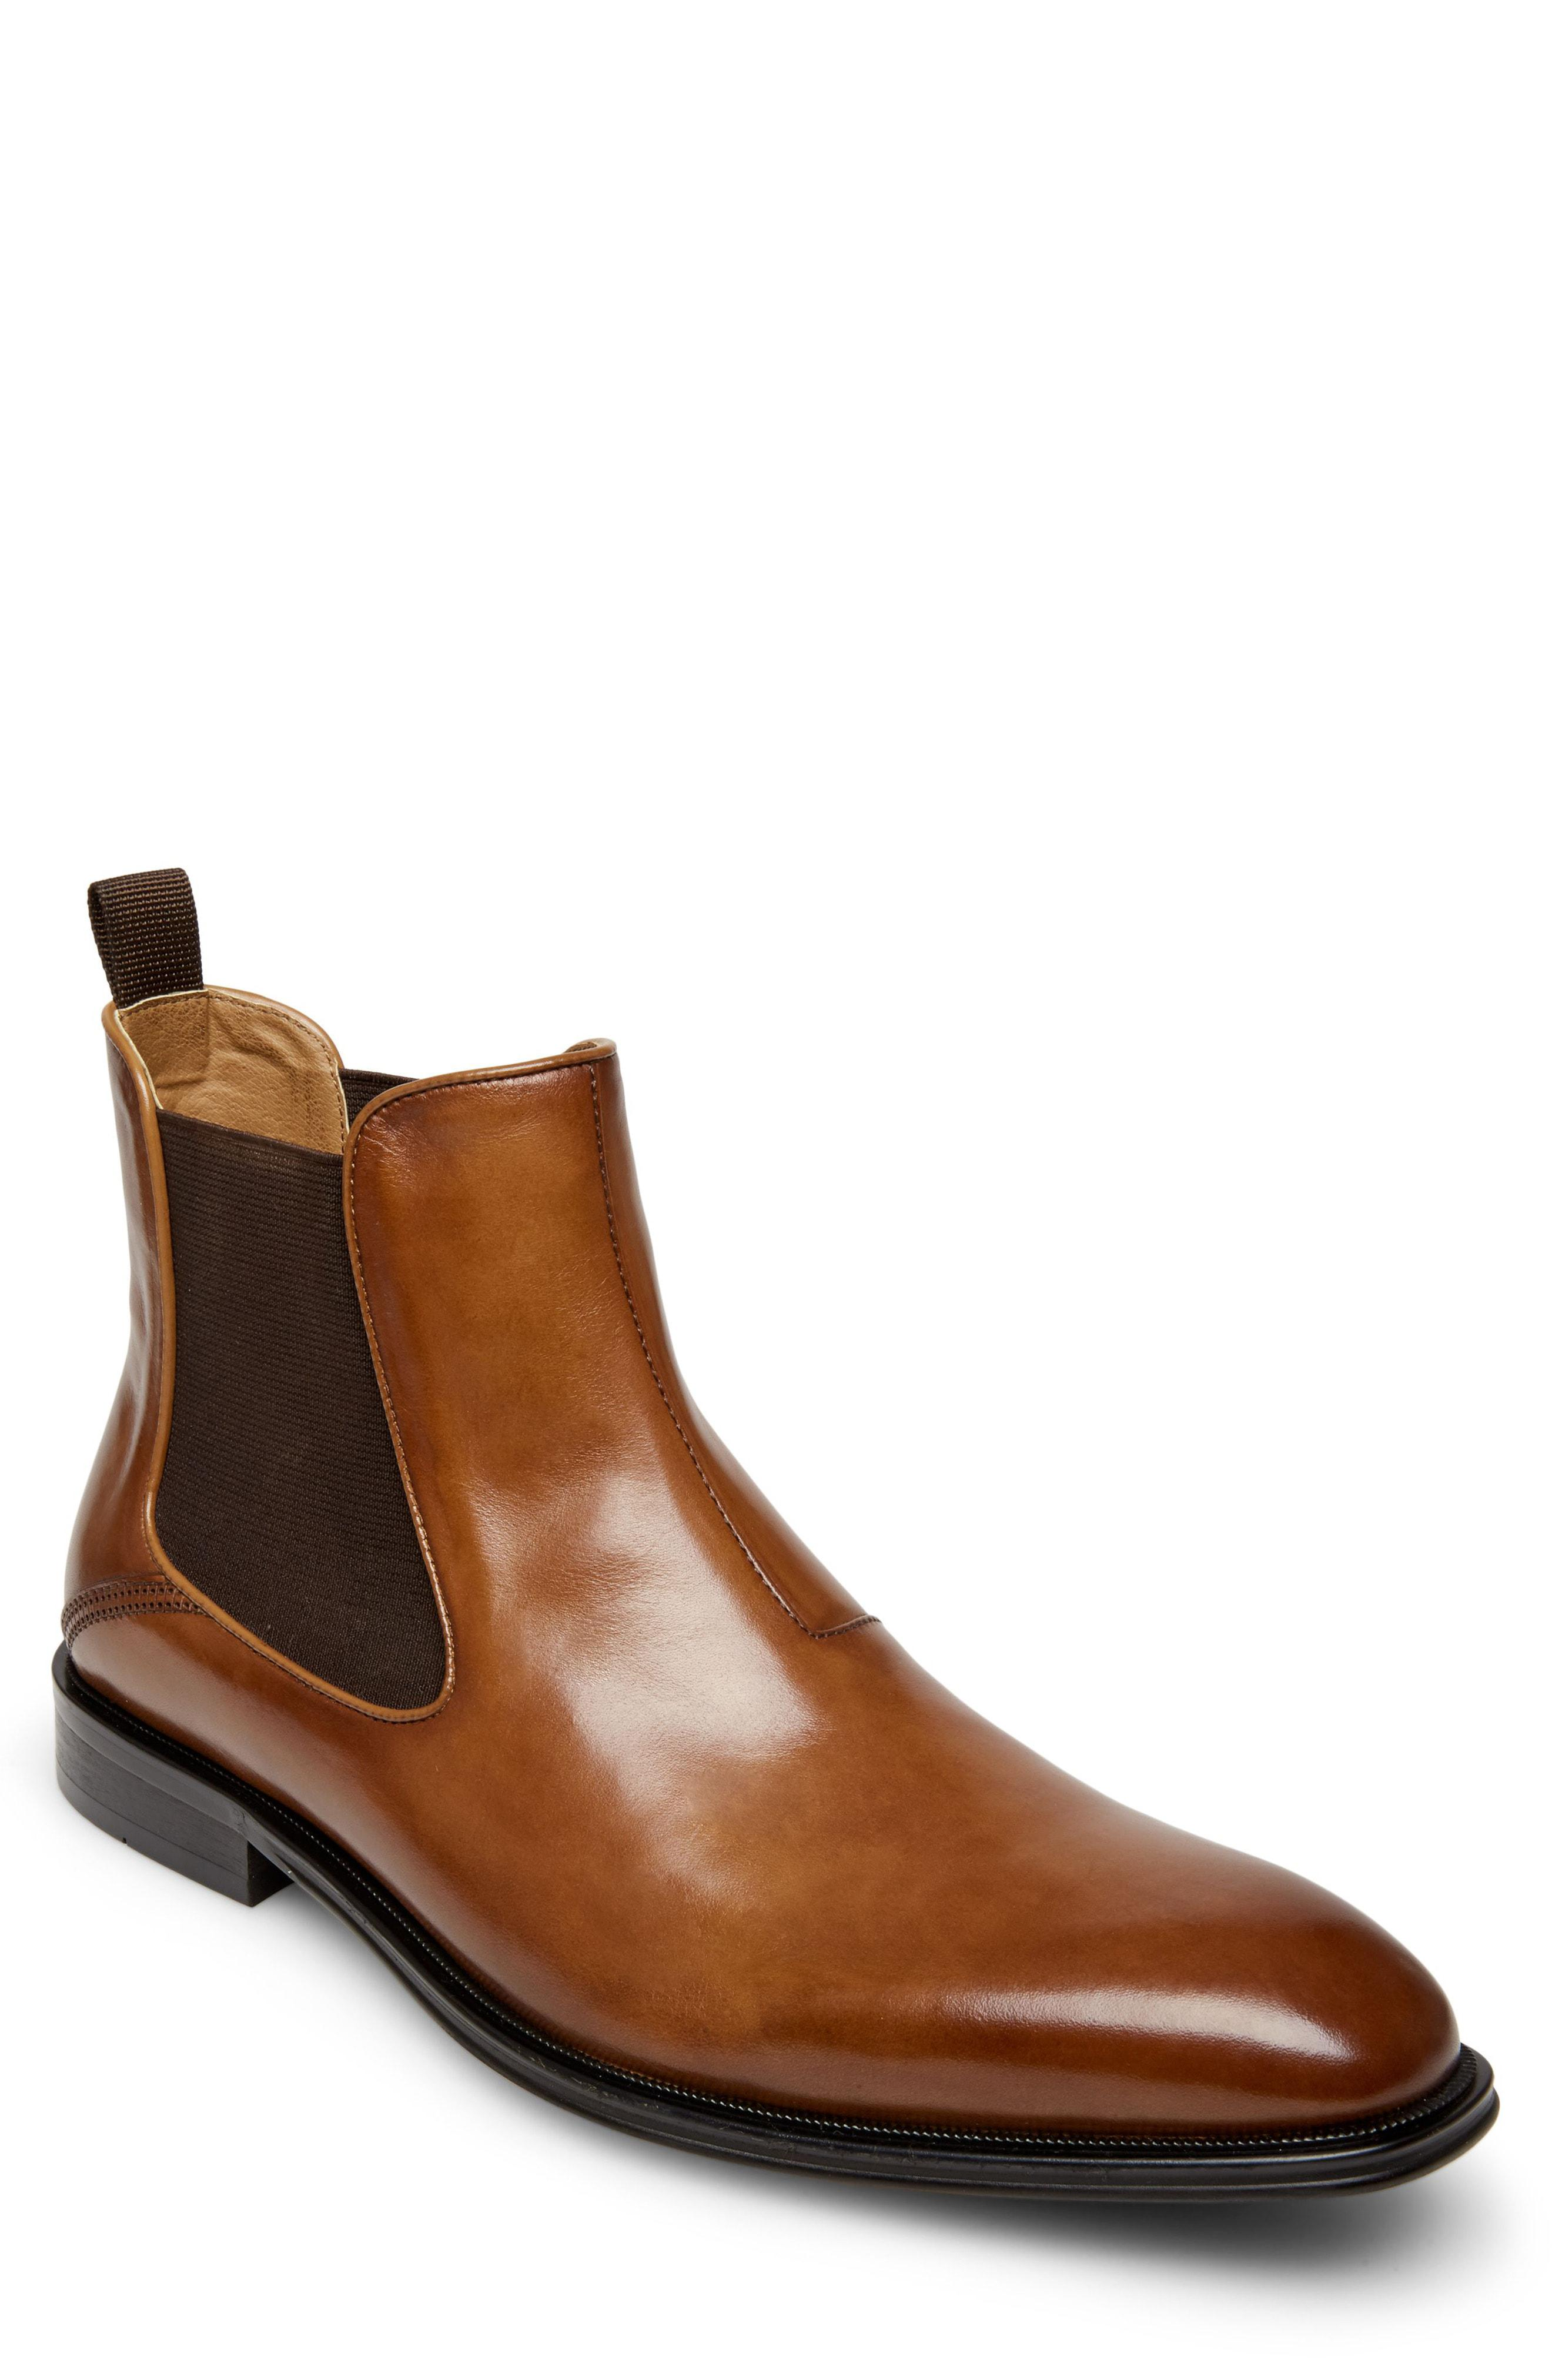 price reduced big sale the sale of shoes Steve Madden Malice Chelsea Boot in Tan Leather (Brown) for Men - Lyst